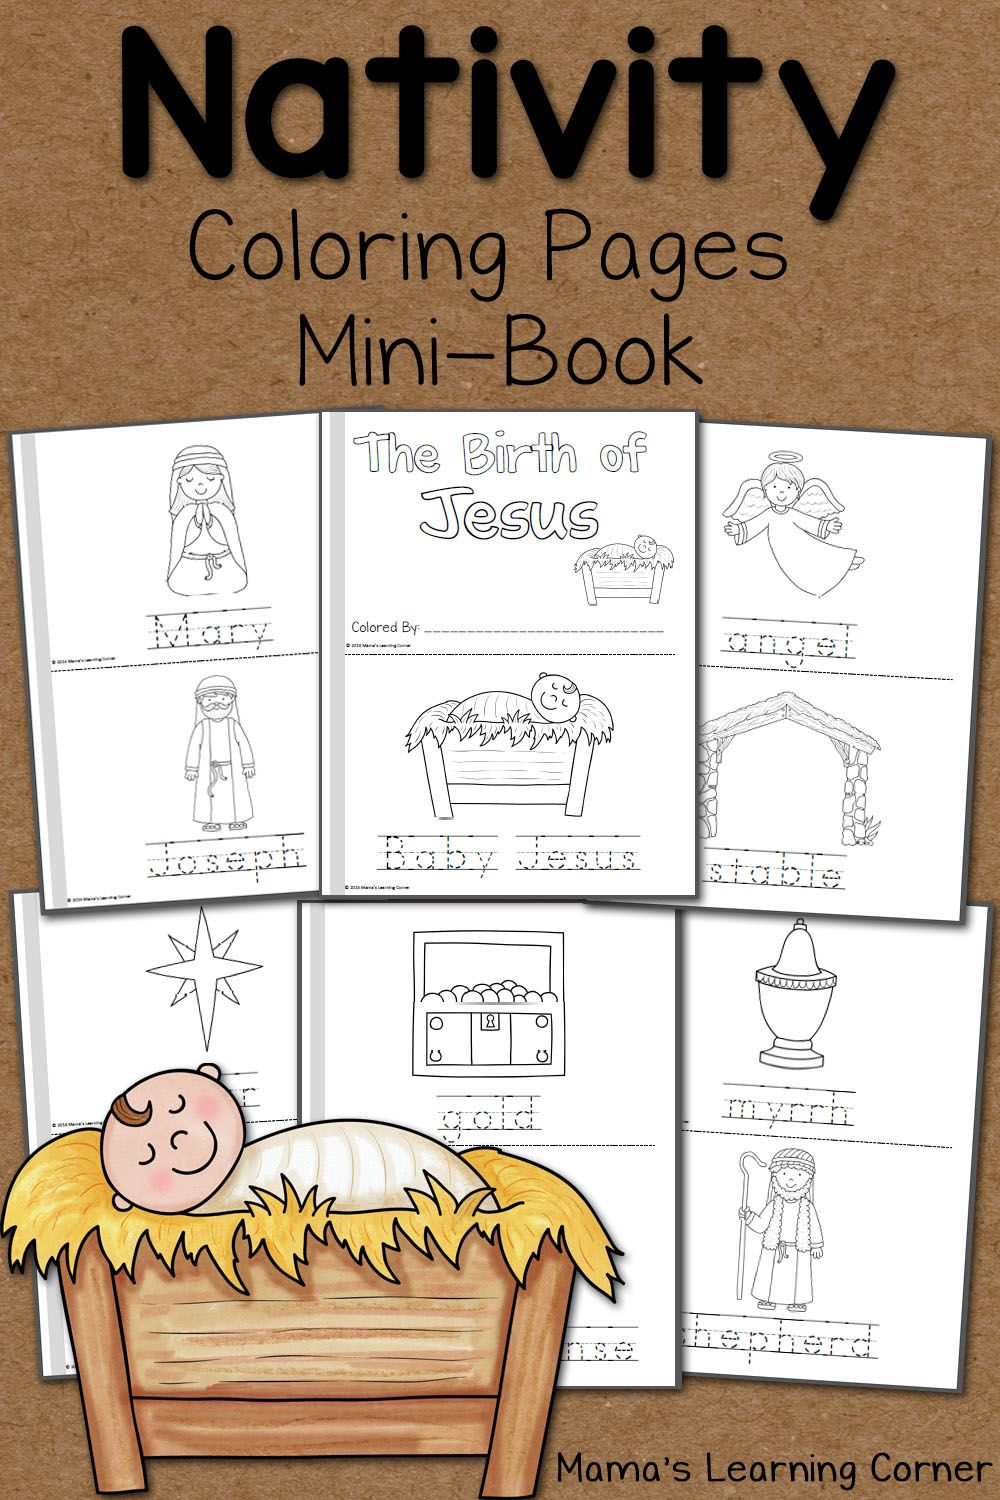 Colouring sheets nativity scene - Download A 14 Page Set Of Nativity Coloring Pages Includes A Cover Page And